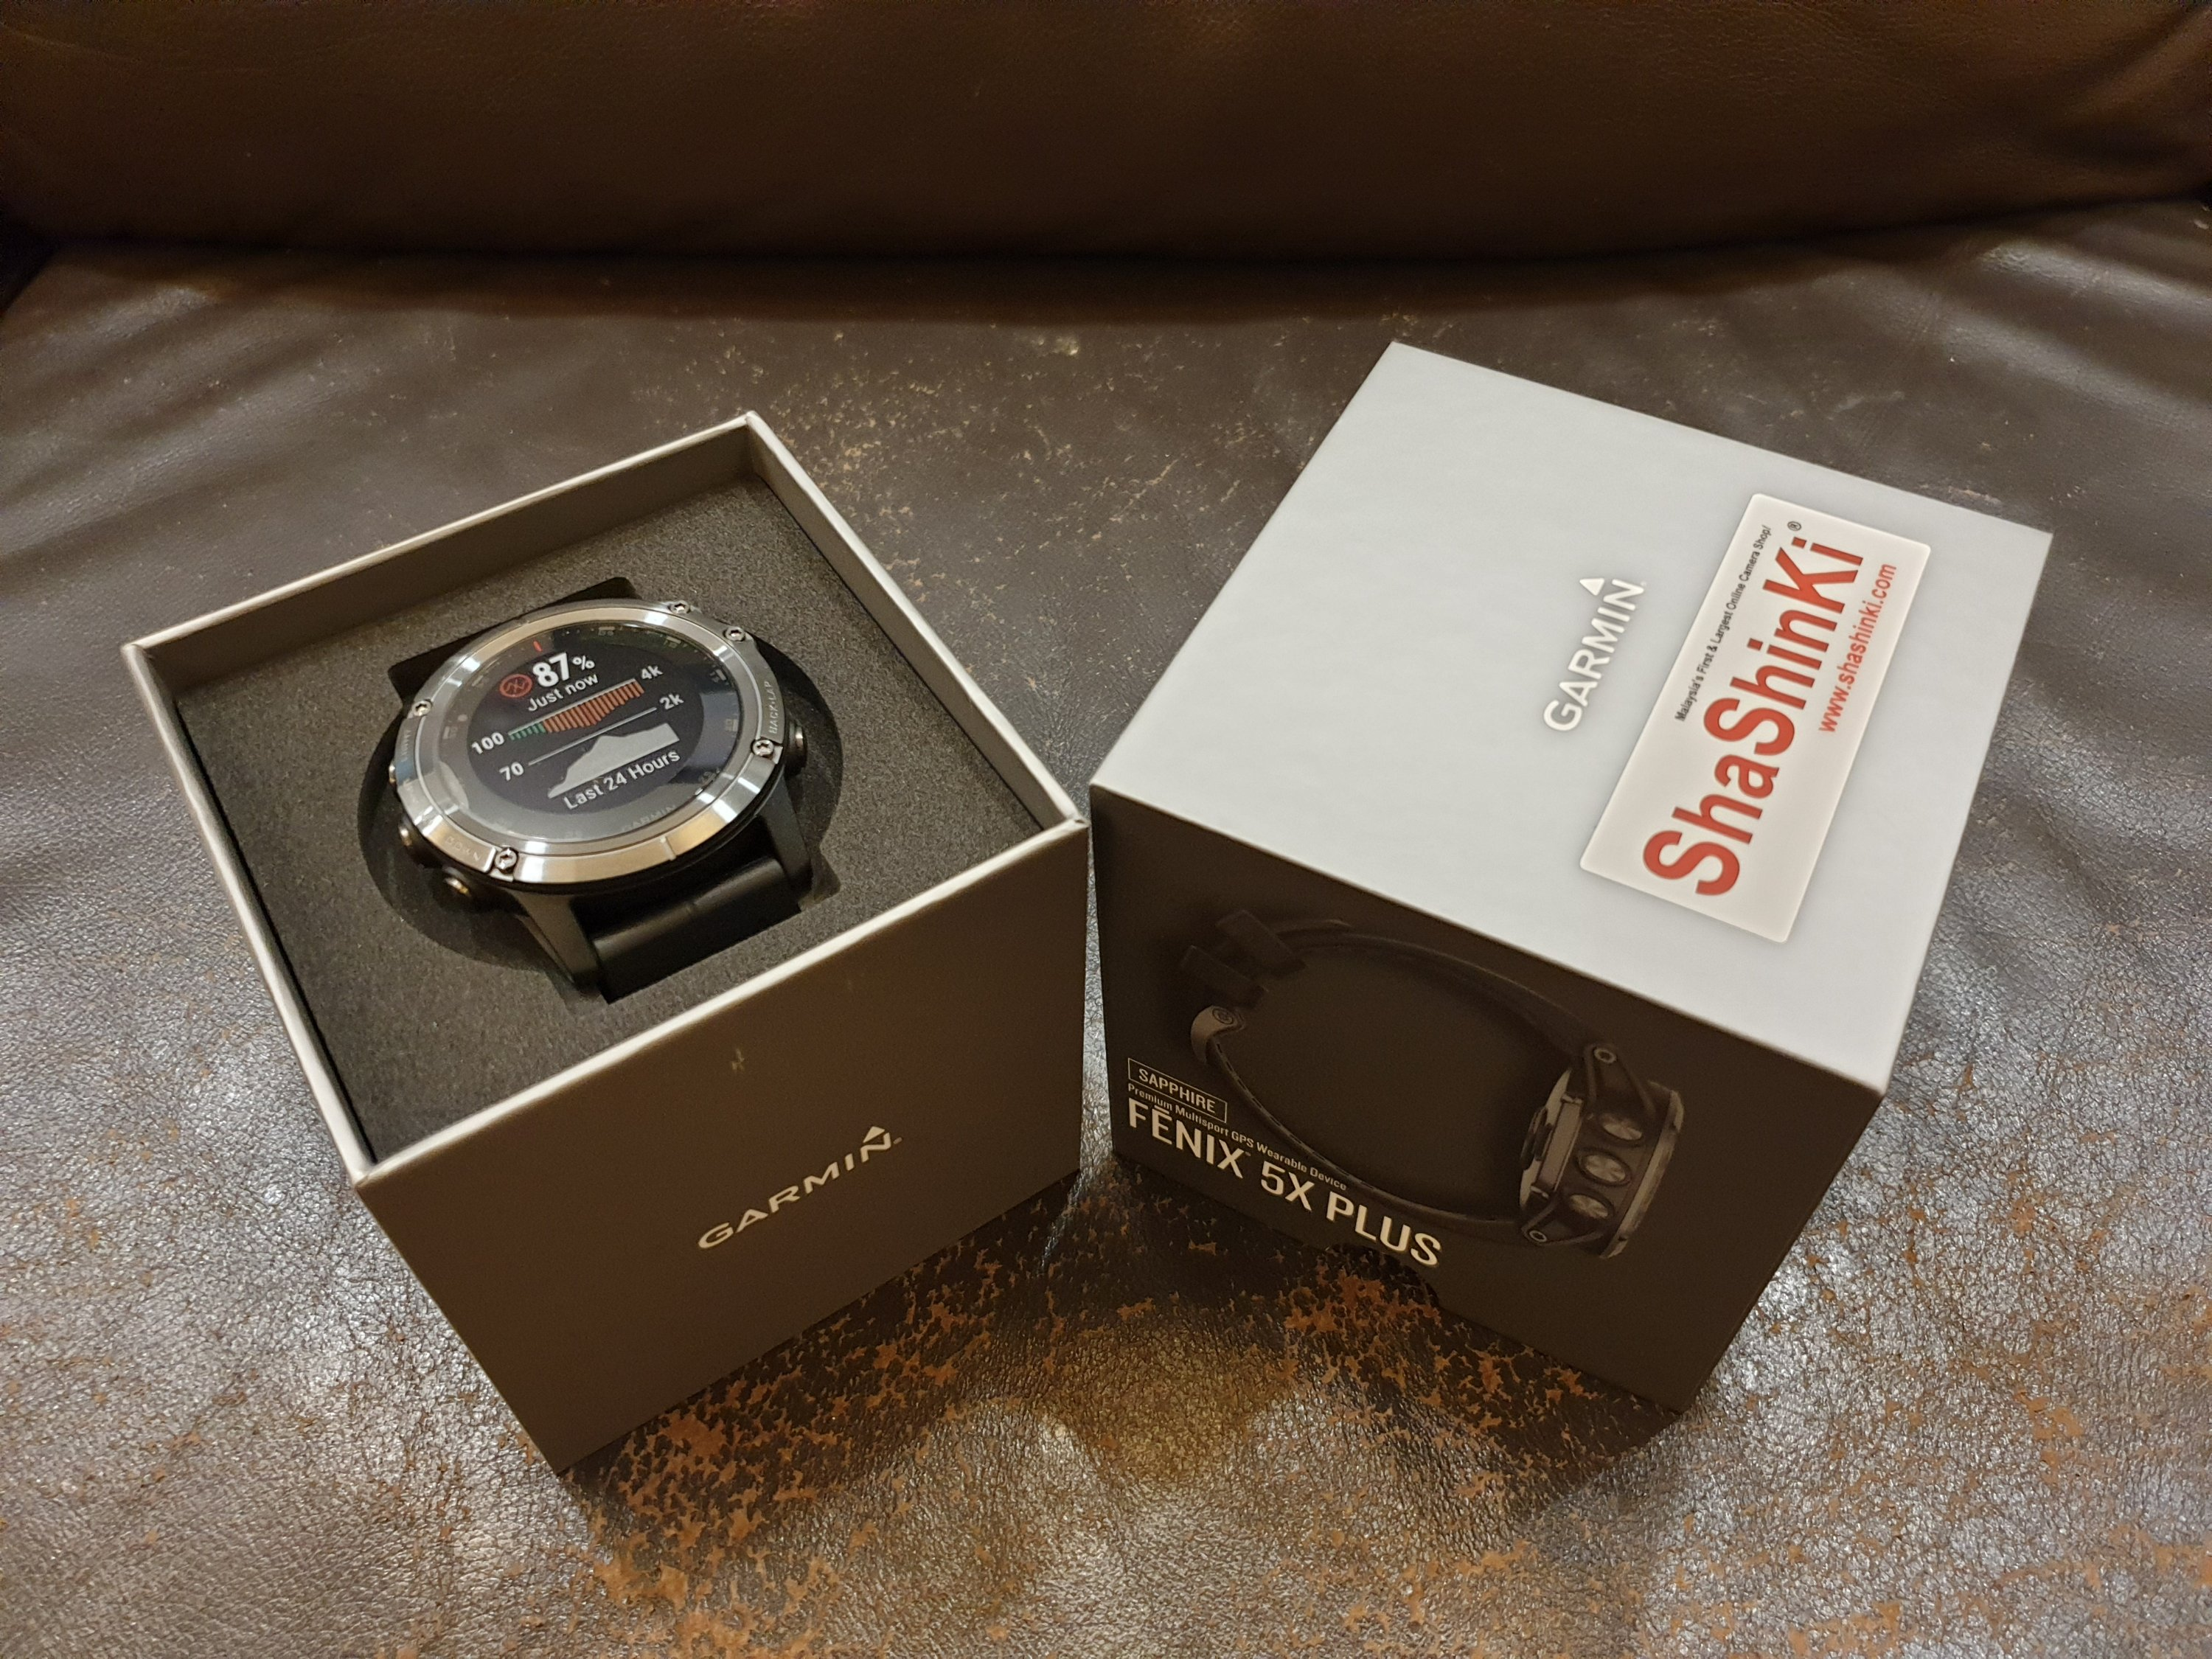 My Dream Watch Garmin Fenix 5x Plus Comes True Dr Koh